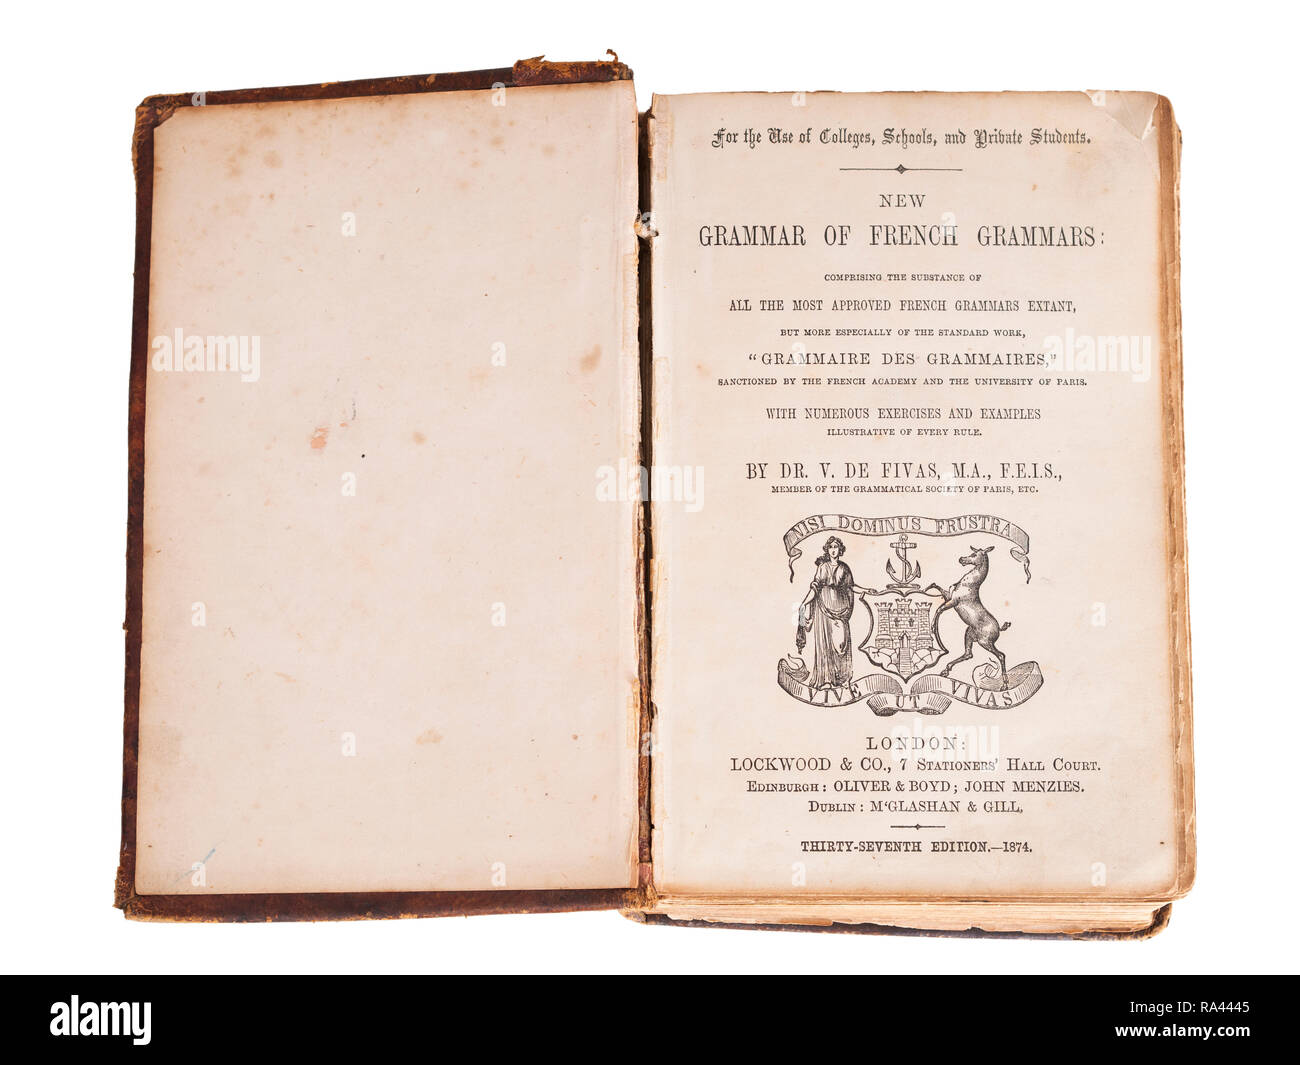 French grammar book from 1874, isolated on white background. - Stock Image